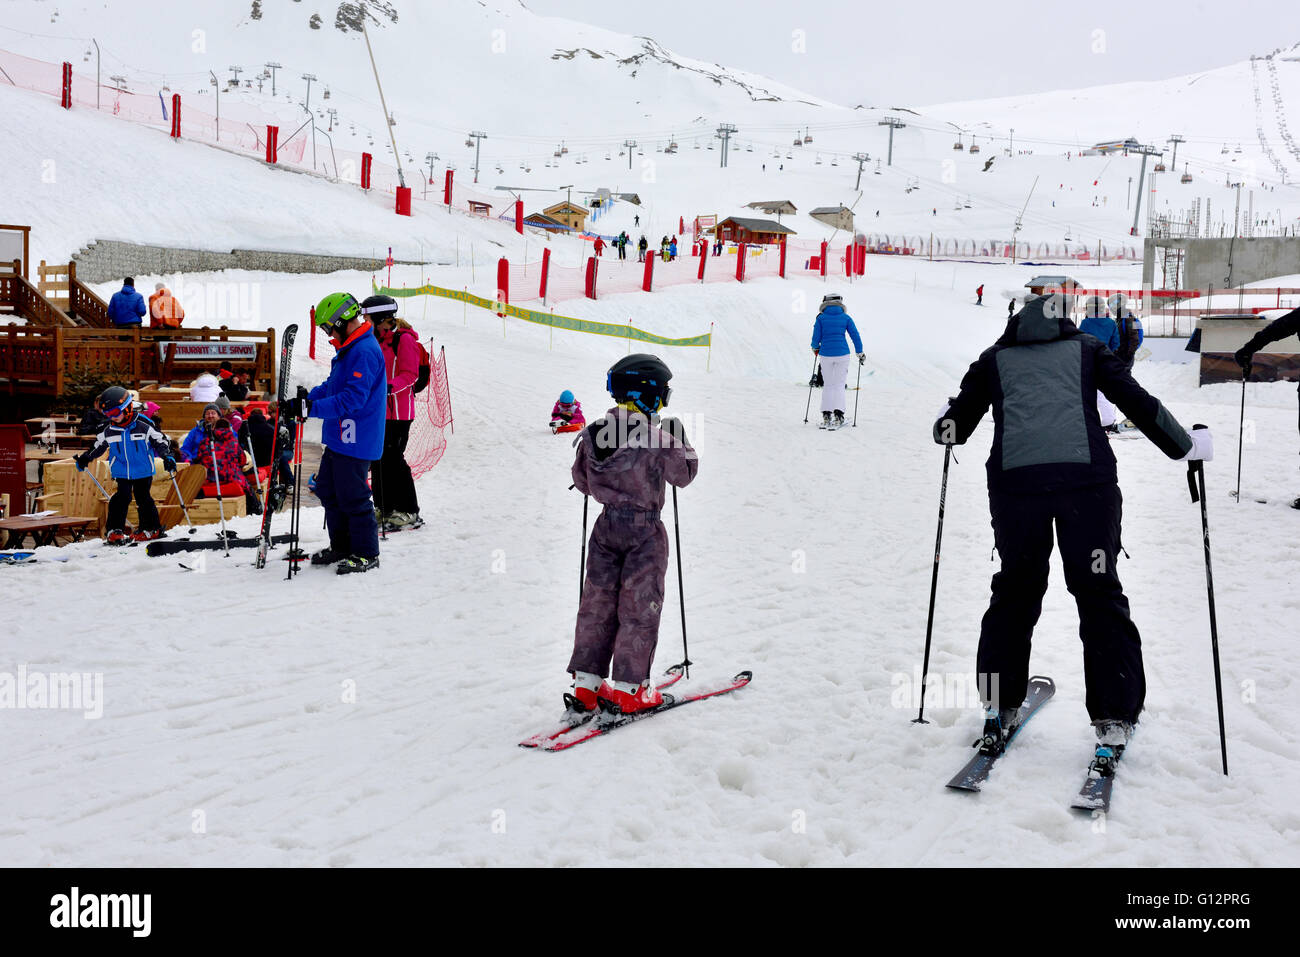 Skiers getting started, les Arcs, France - Stock Image